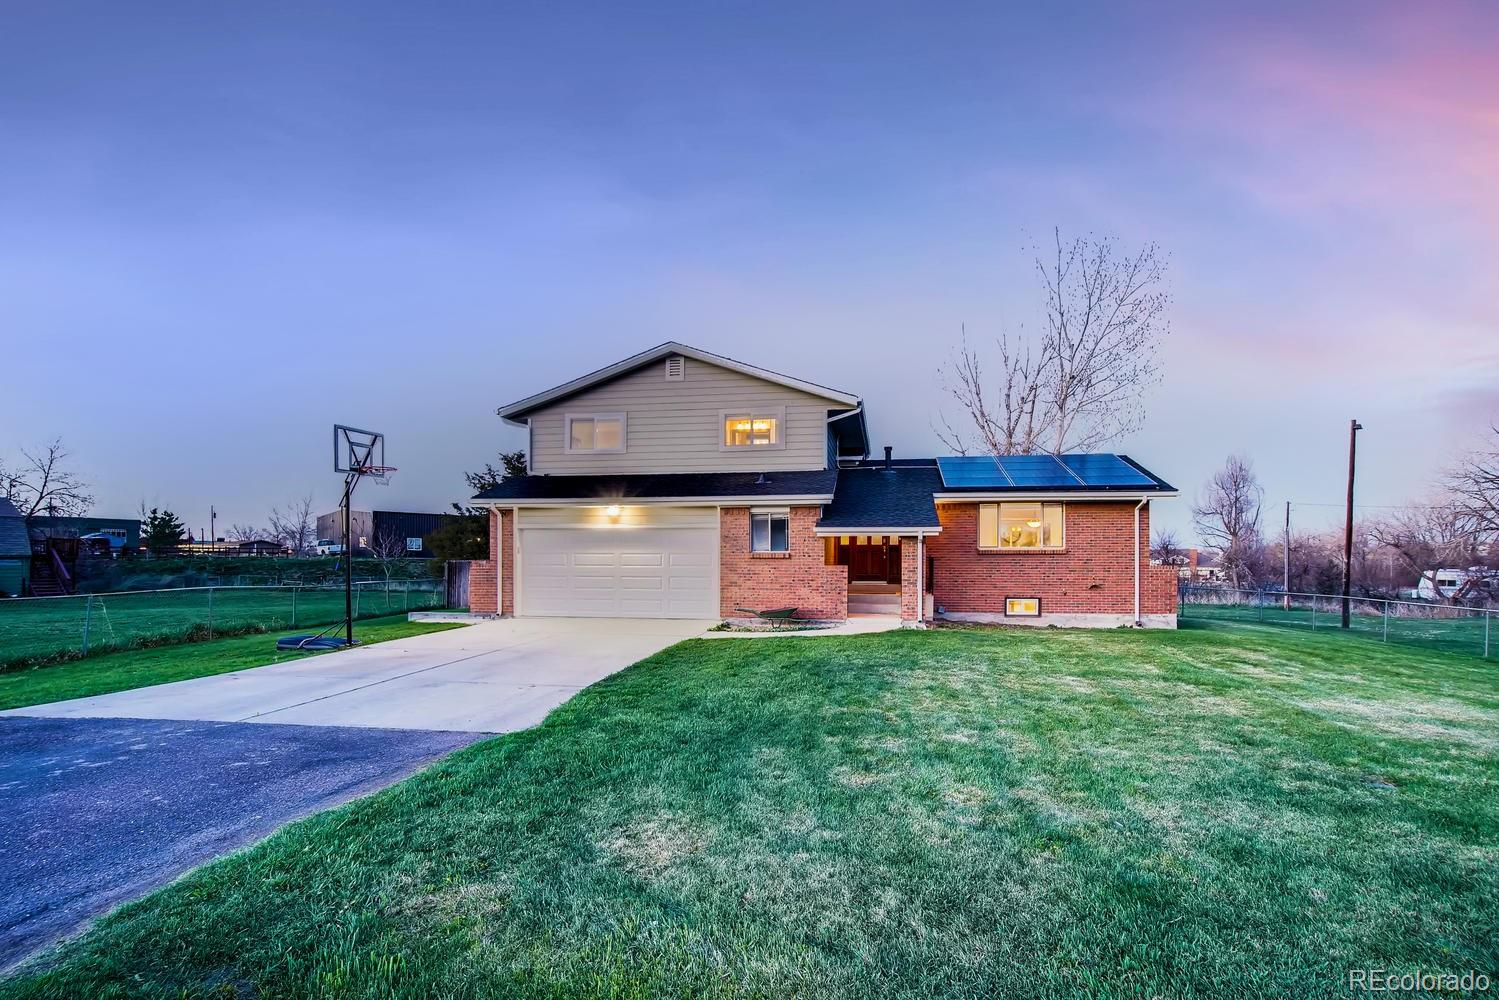 9883 Zephyr Drive, Broomfield, CO 80021 - Broomfield, CO real estate listing